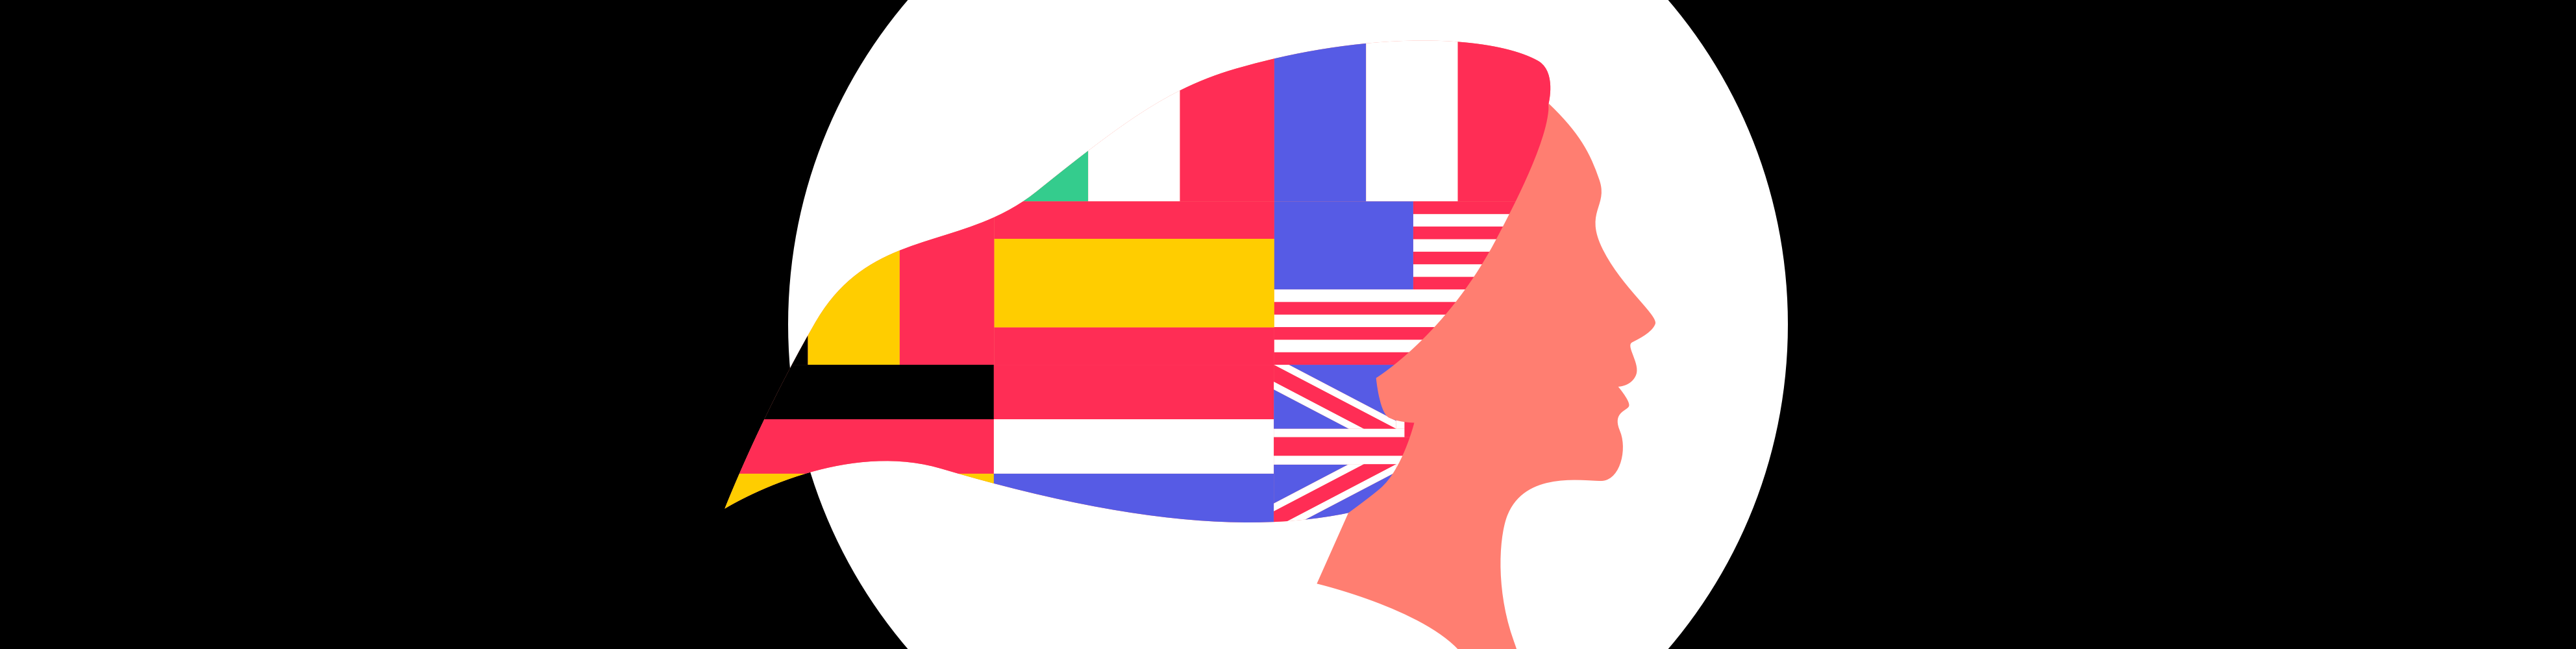 Illustrated head with flags for hair